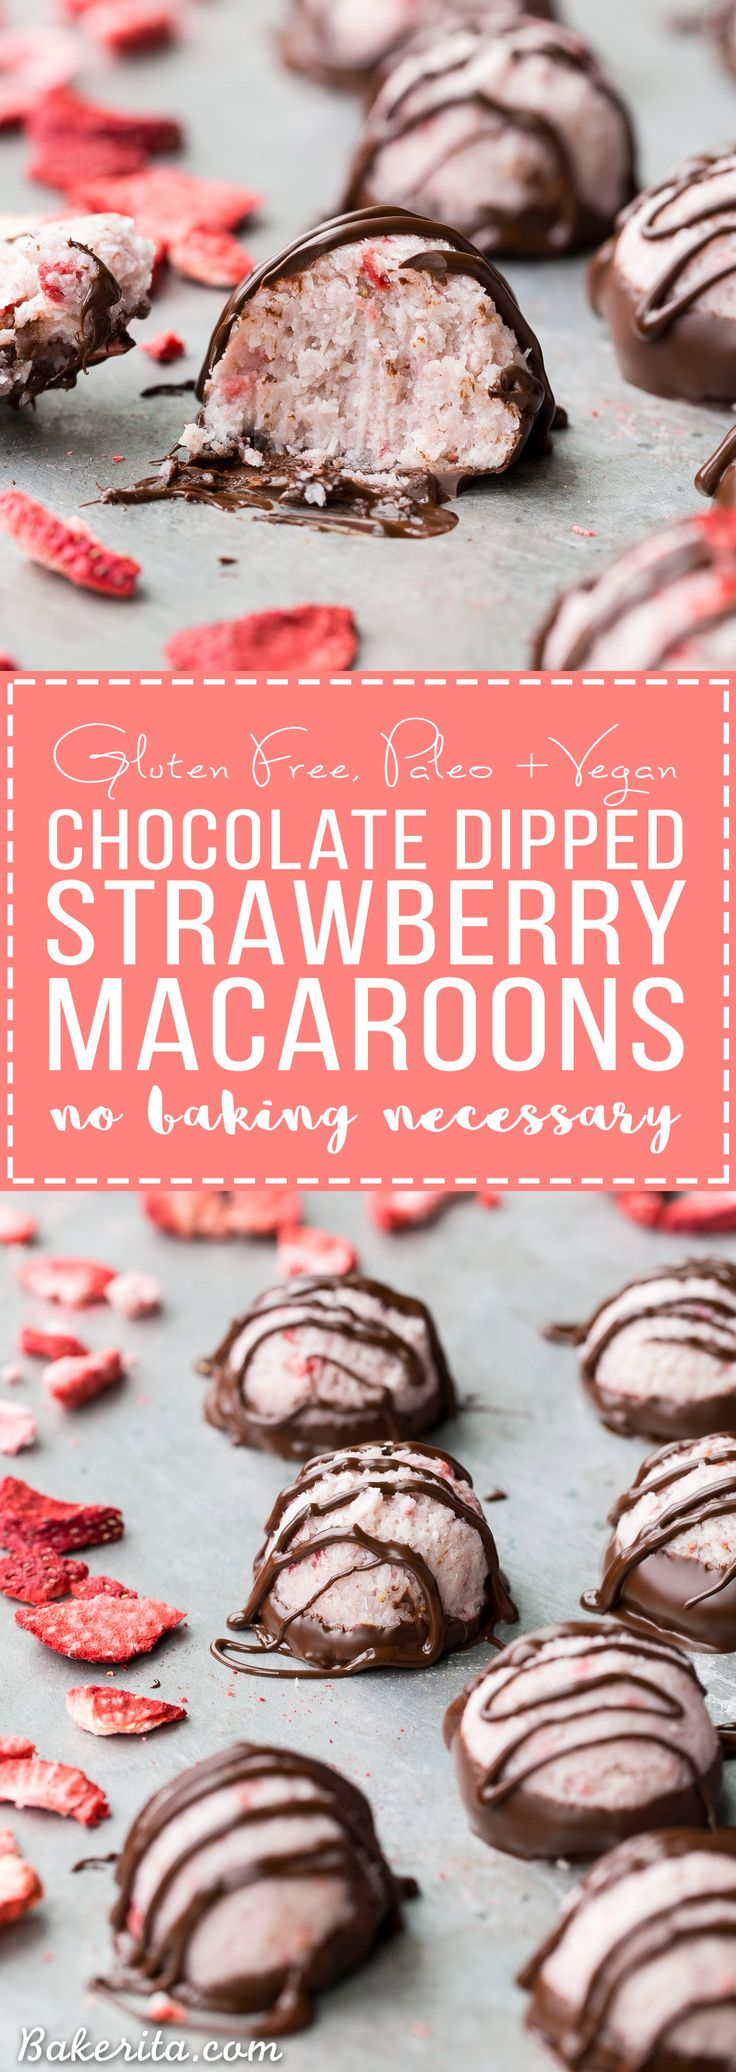 These No-Bake Chocolate Dipped Strawberry Macaroons are packed with strawberry flavor! It's hard to resist these creamy gluten-free, Paleo + vegan coconut macaroons, and the chocolate dip and drizzle makes them even more delicious.